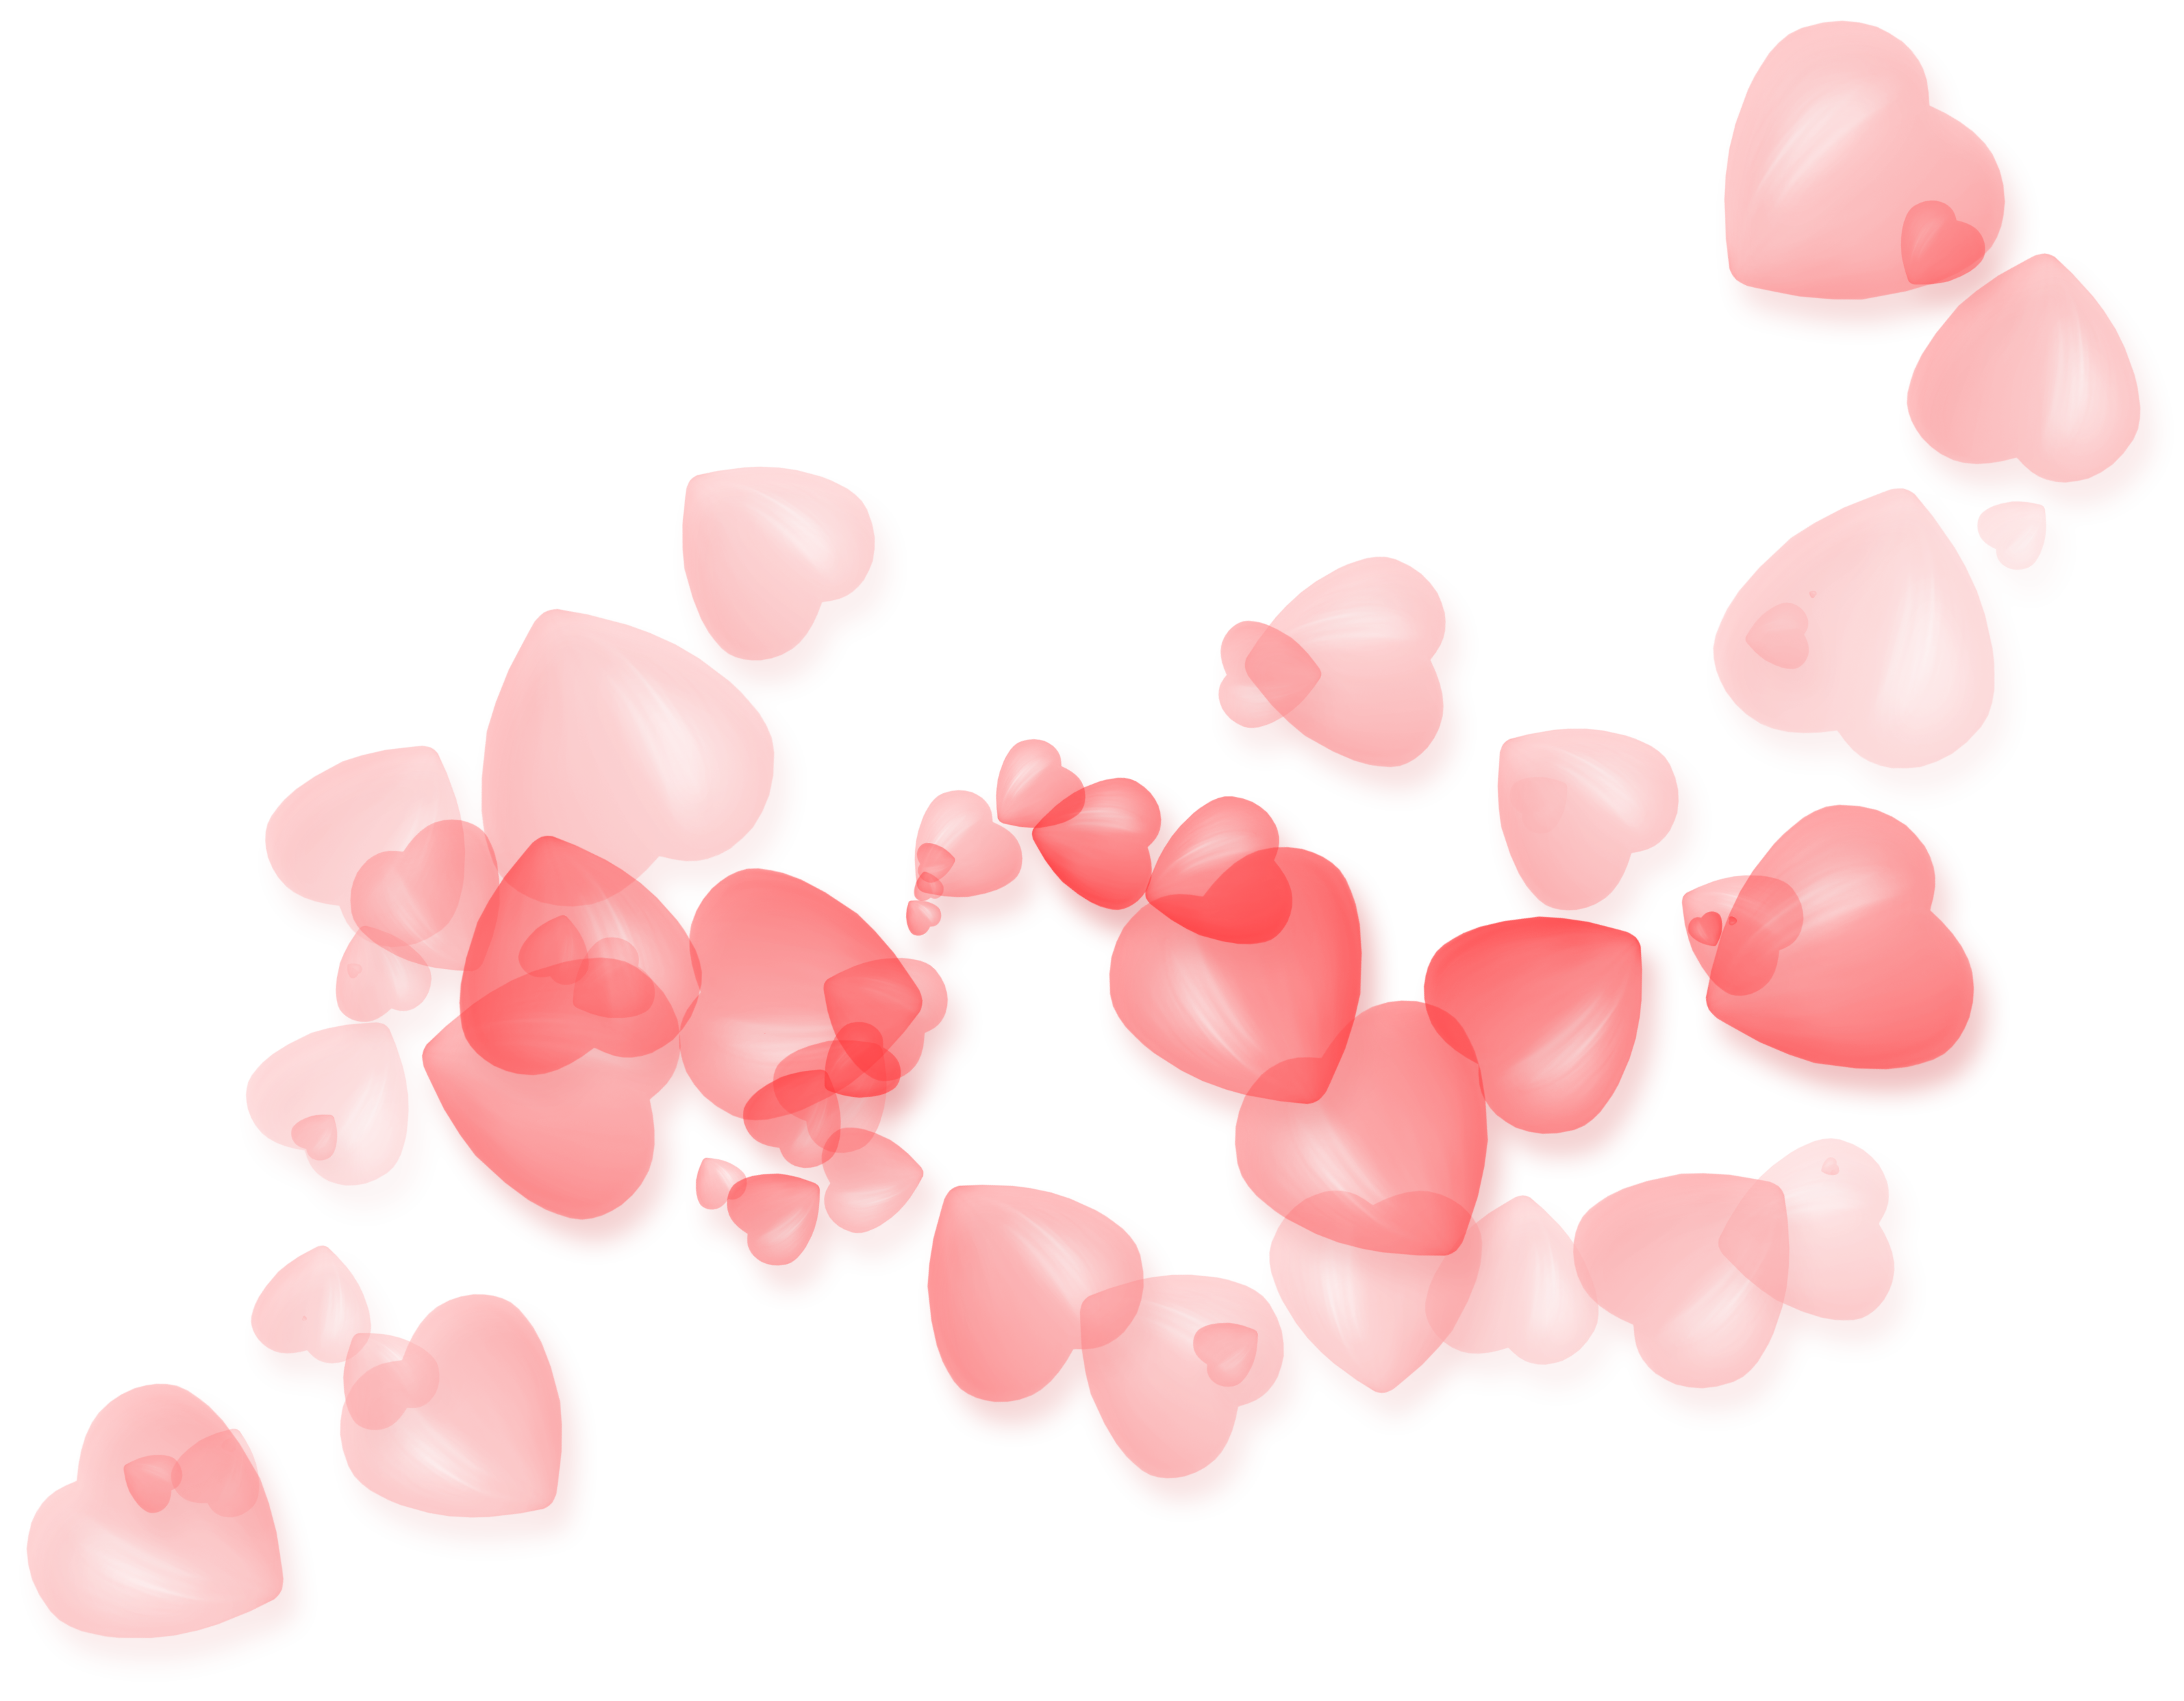 Heart Png Images With Transparent Background | Free ...